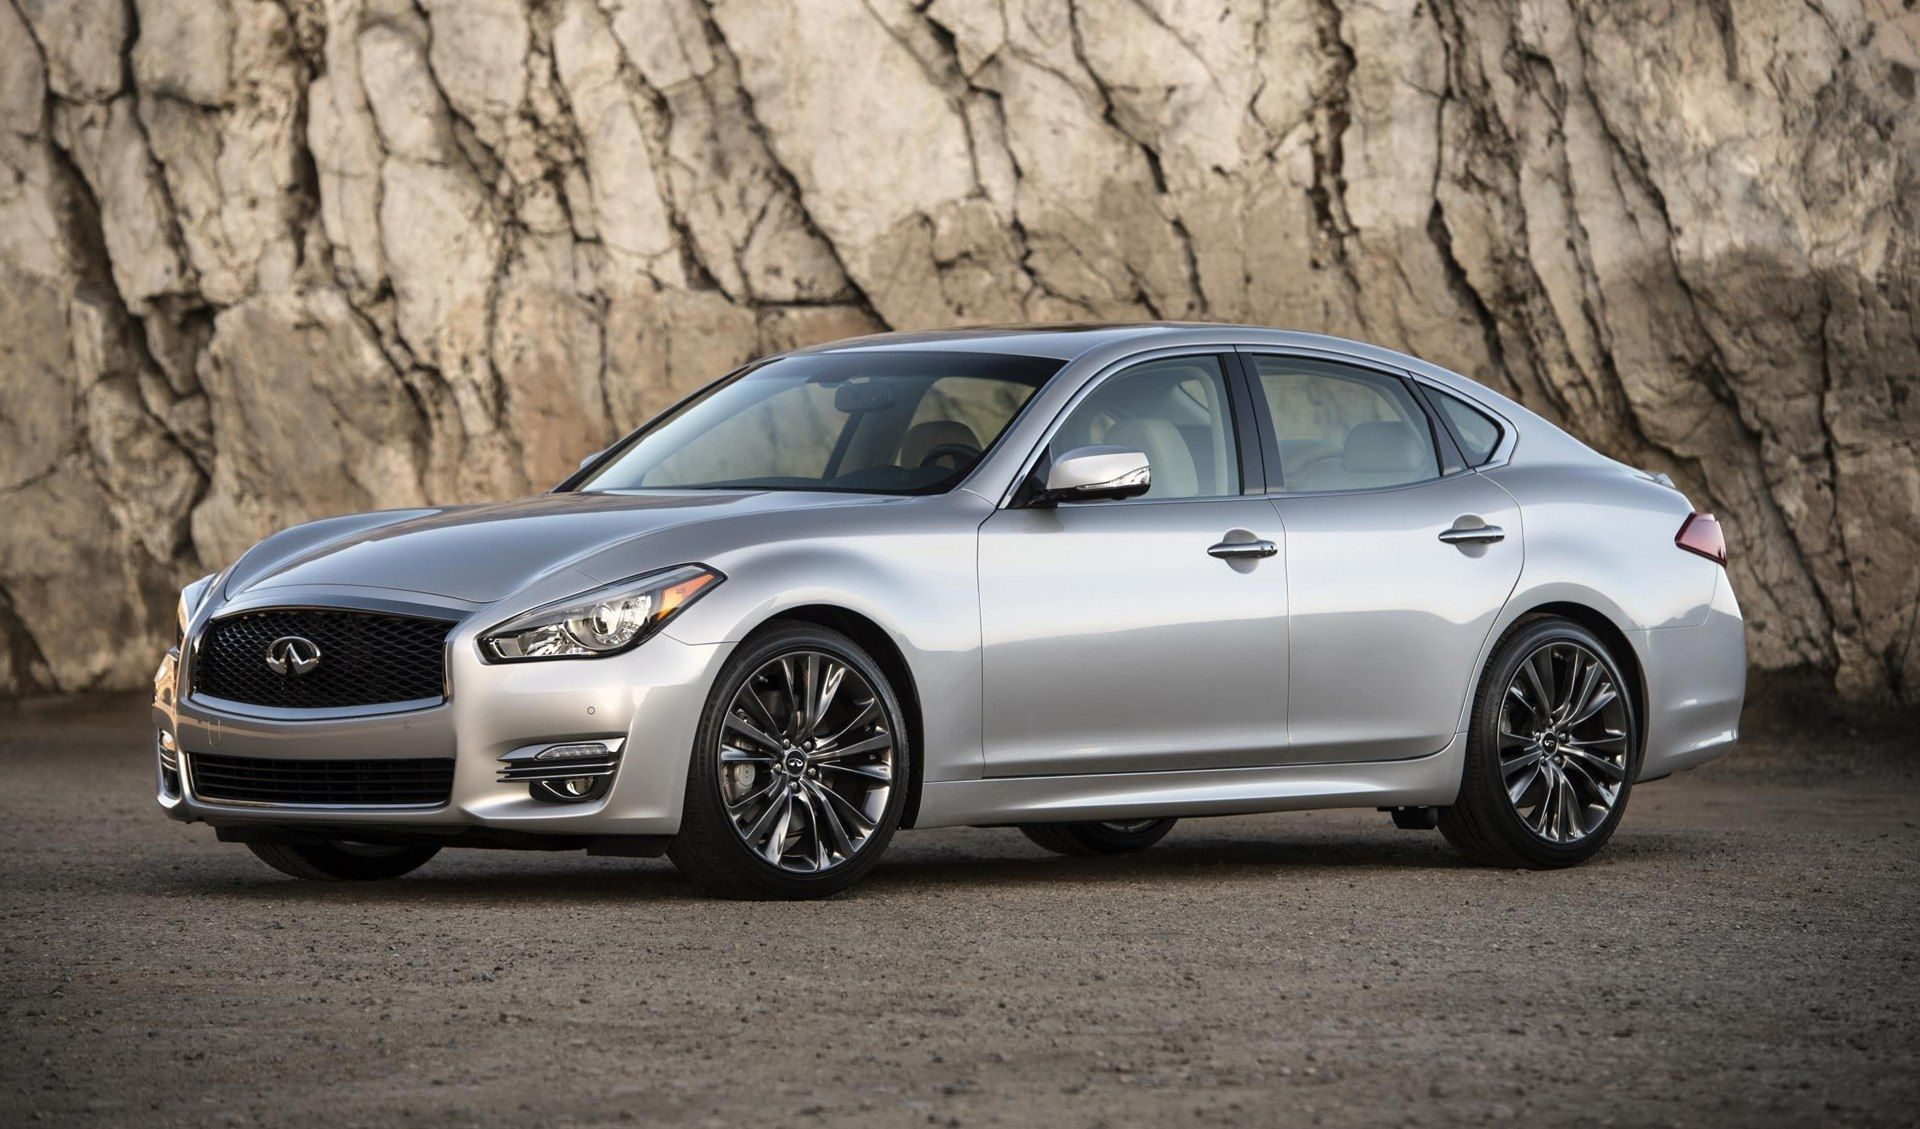 When Will 2020 Infiniti Q70 Come Out Infiniti New Luxury Cars Luxury Sedan